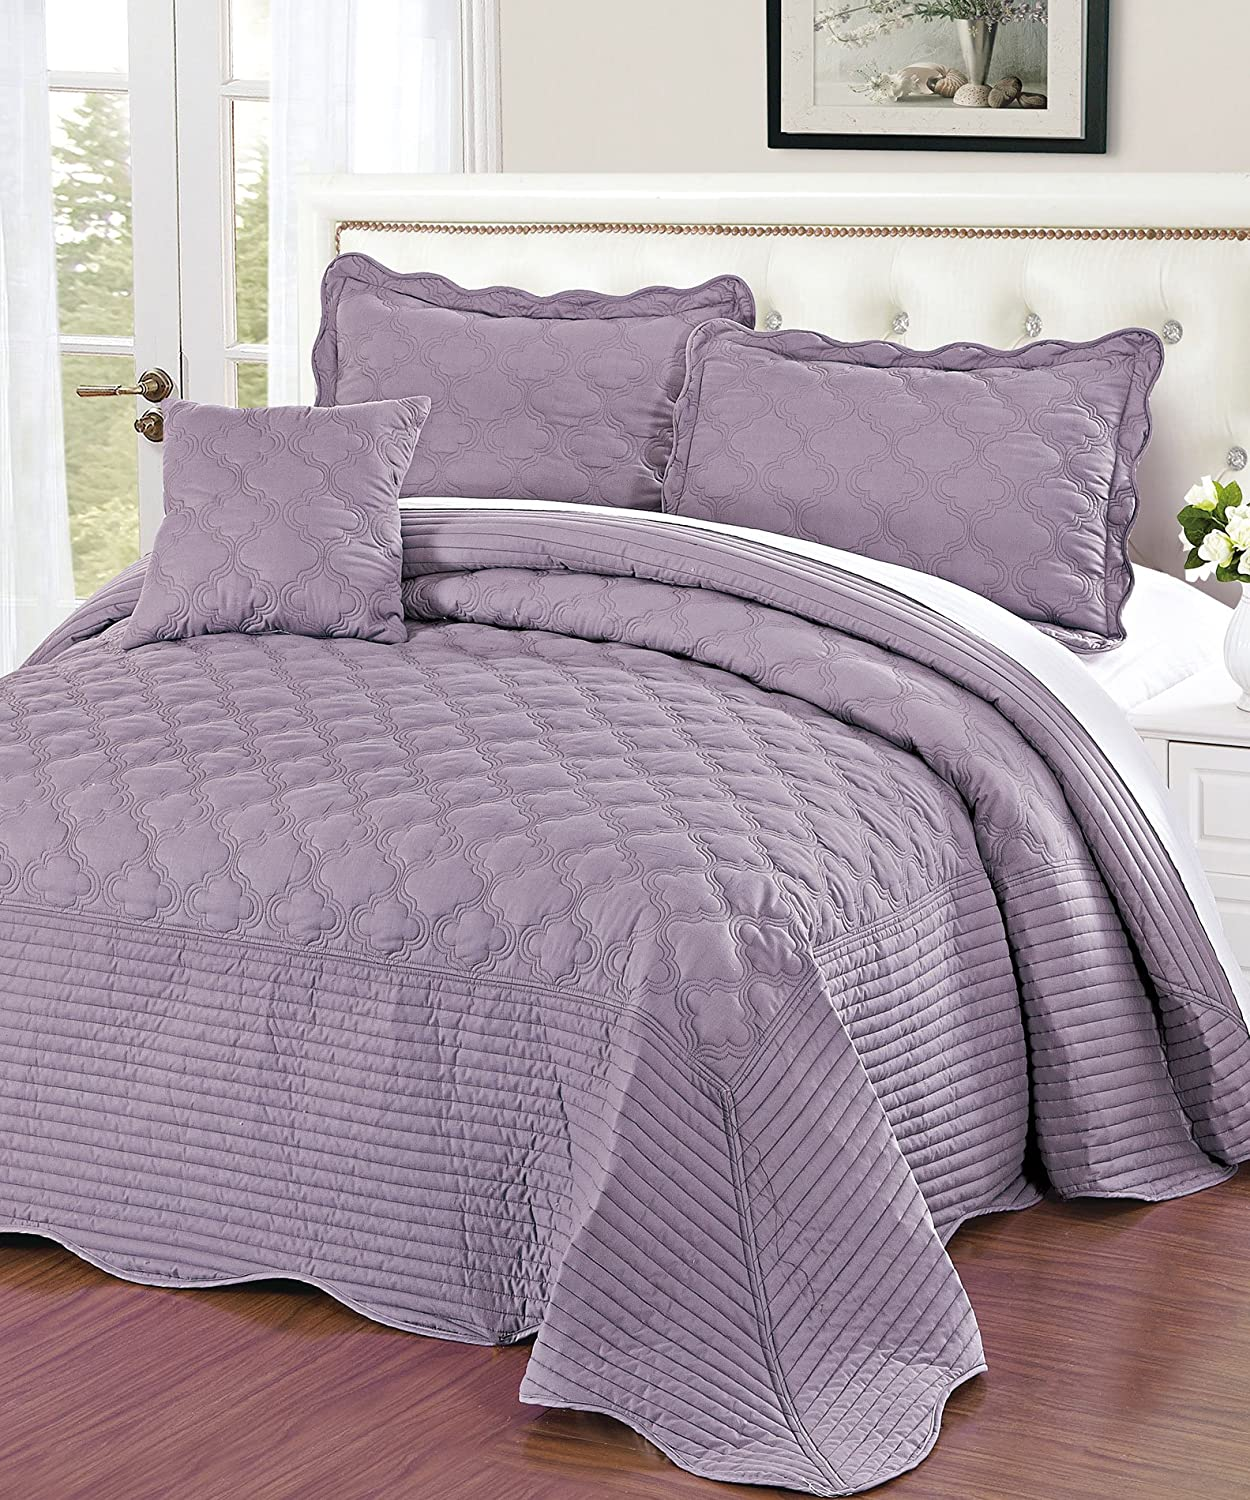 Queen Serenta Quilted Cotton 4 Pieces Bedspread Set Regal Orchid BNF Home BNFBDSQQCOTRO